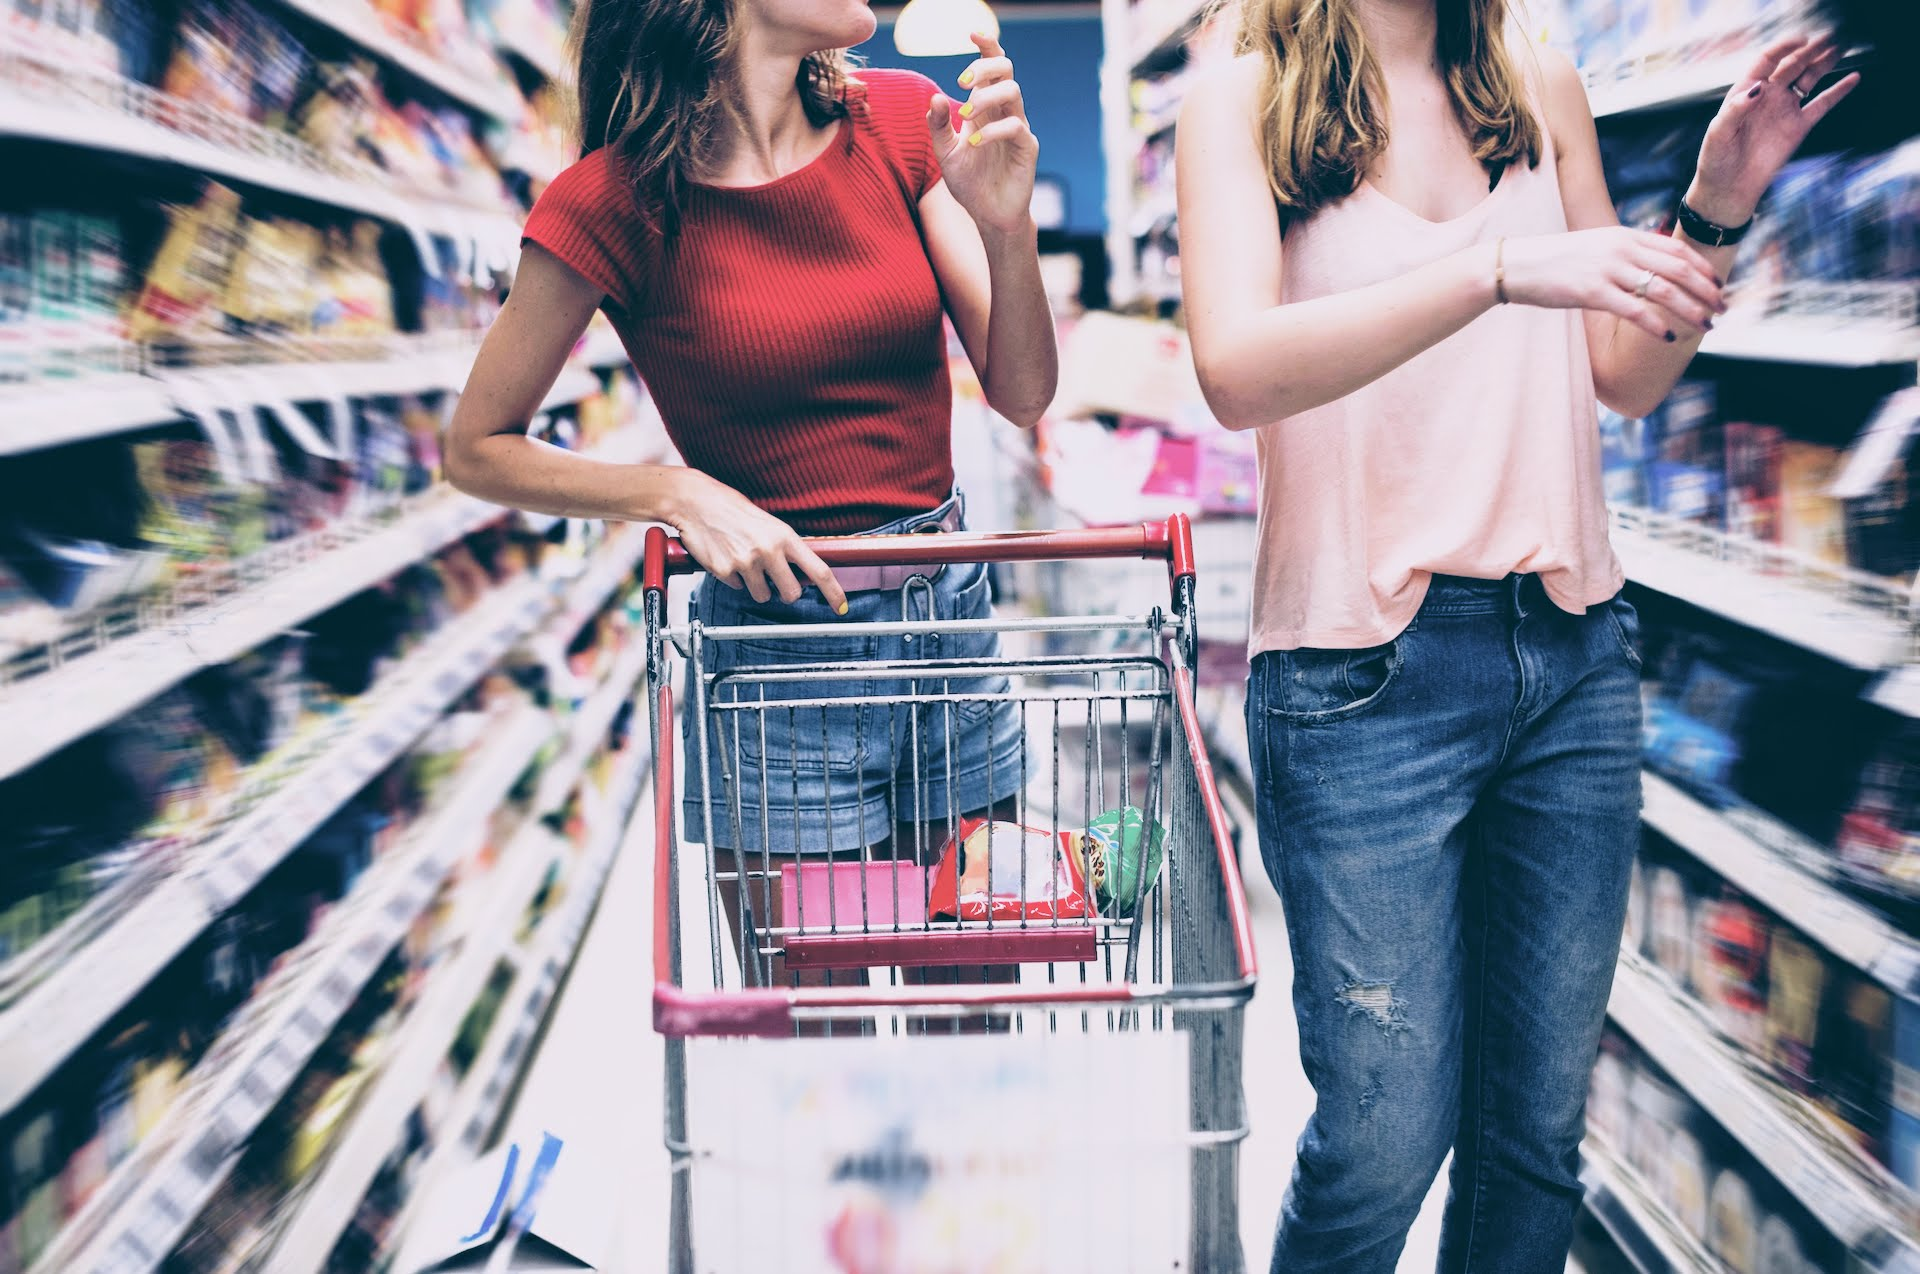 How to Save 40% on Groceries Without Coupons 13